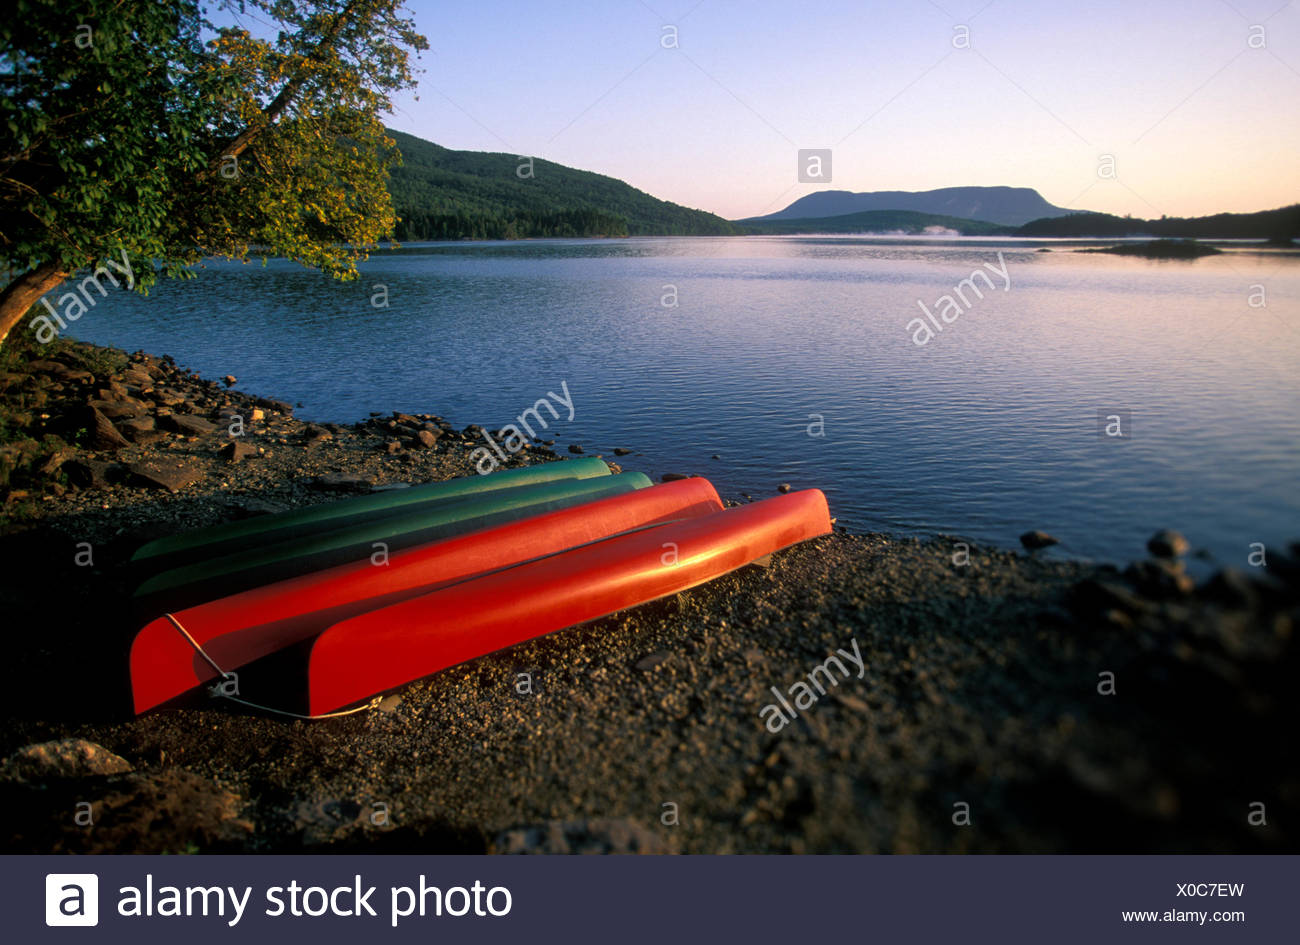 Canoes on Lobster Lake with Mount Katahdin in background, Maine